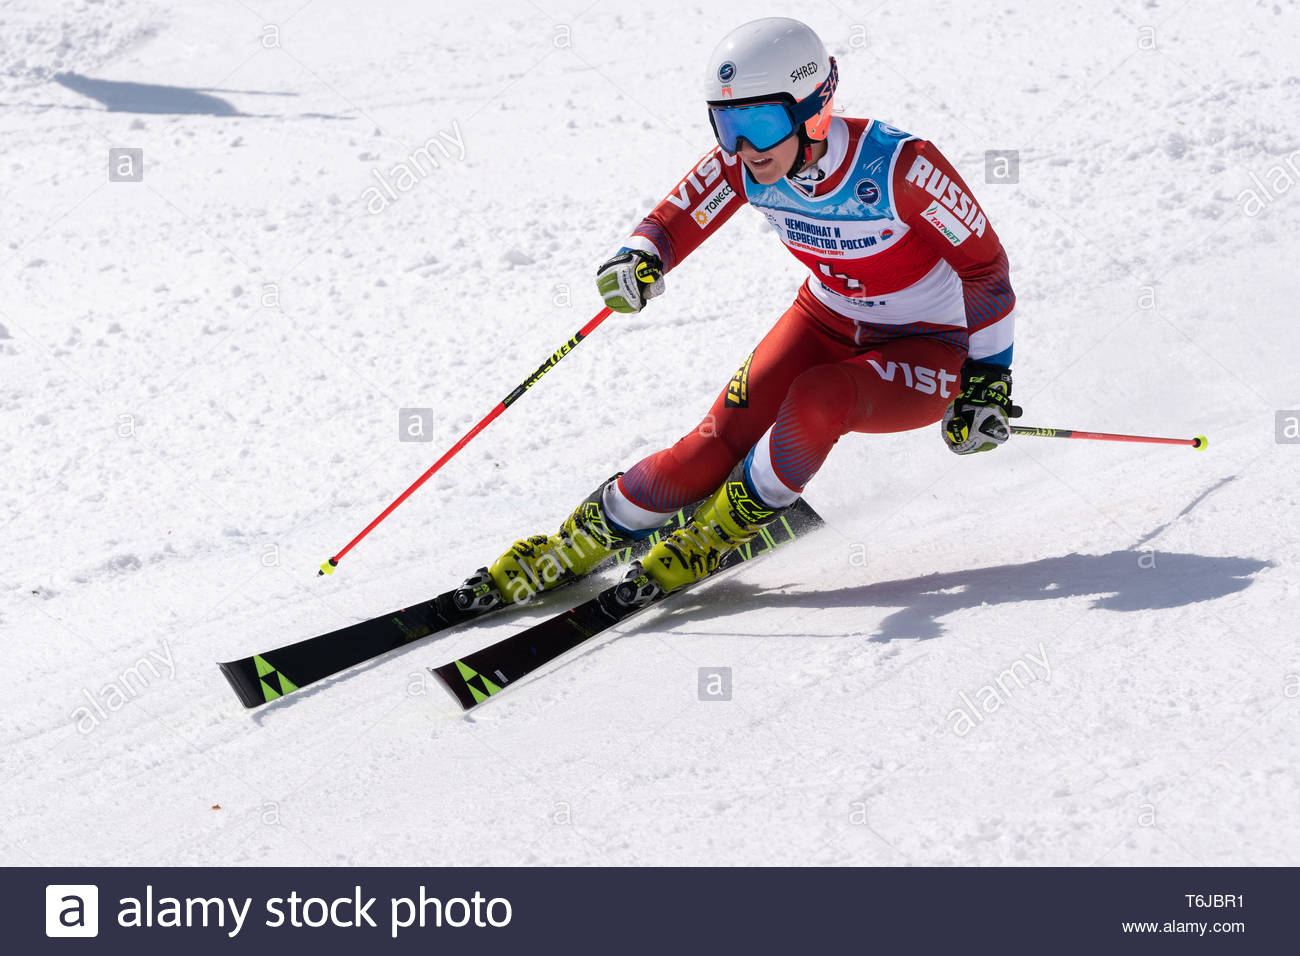 KAMCHATKA PENINSULA, RUSSIAN FEDERATION - APRIL 1, 2019: Mountain skier Rinata Abdulkayumova (Kamchatka) skiing down snowy mountain slope. Russian Wom - Stock Image